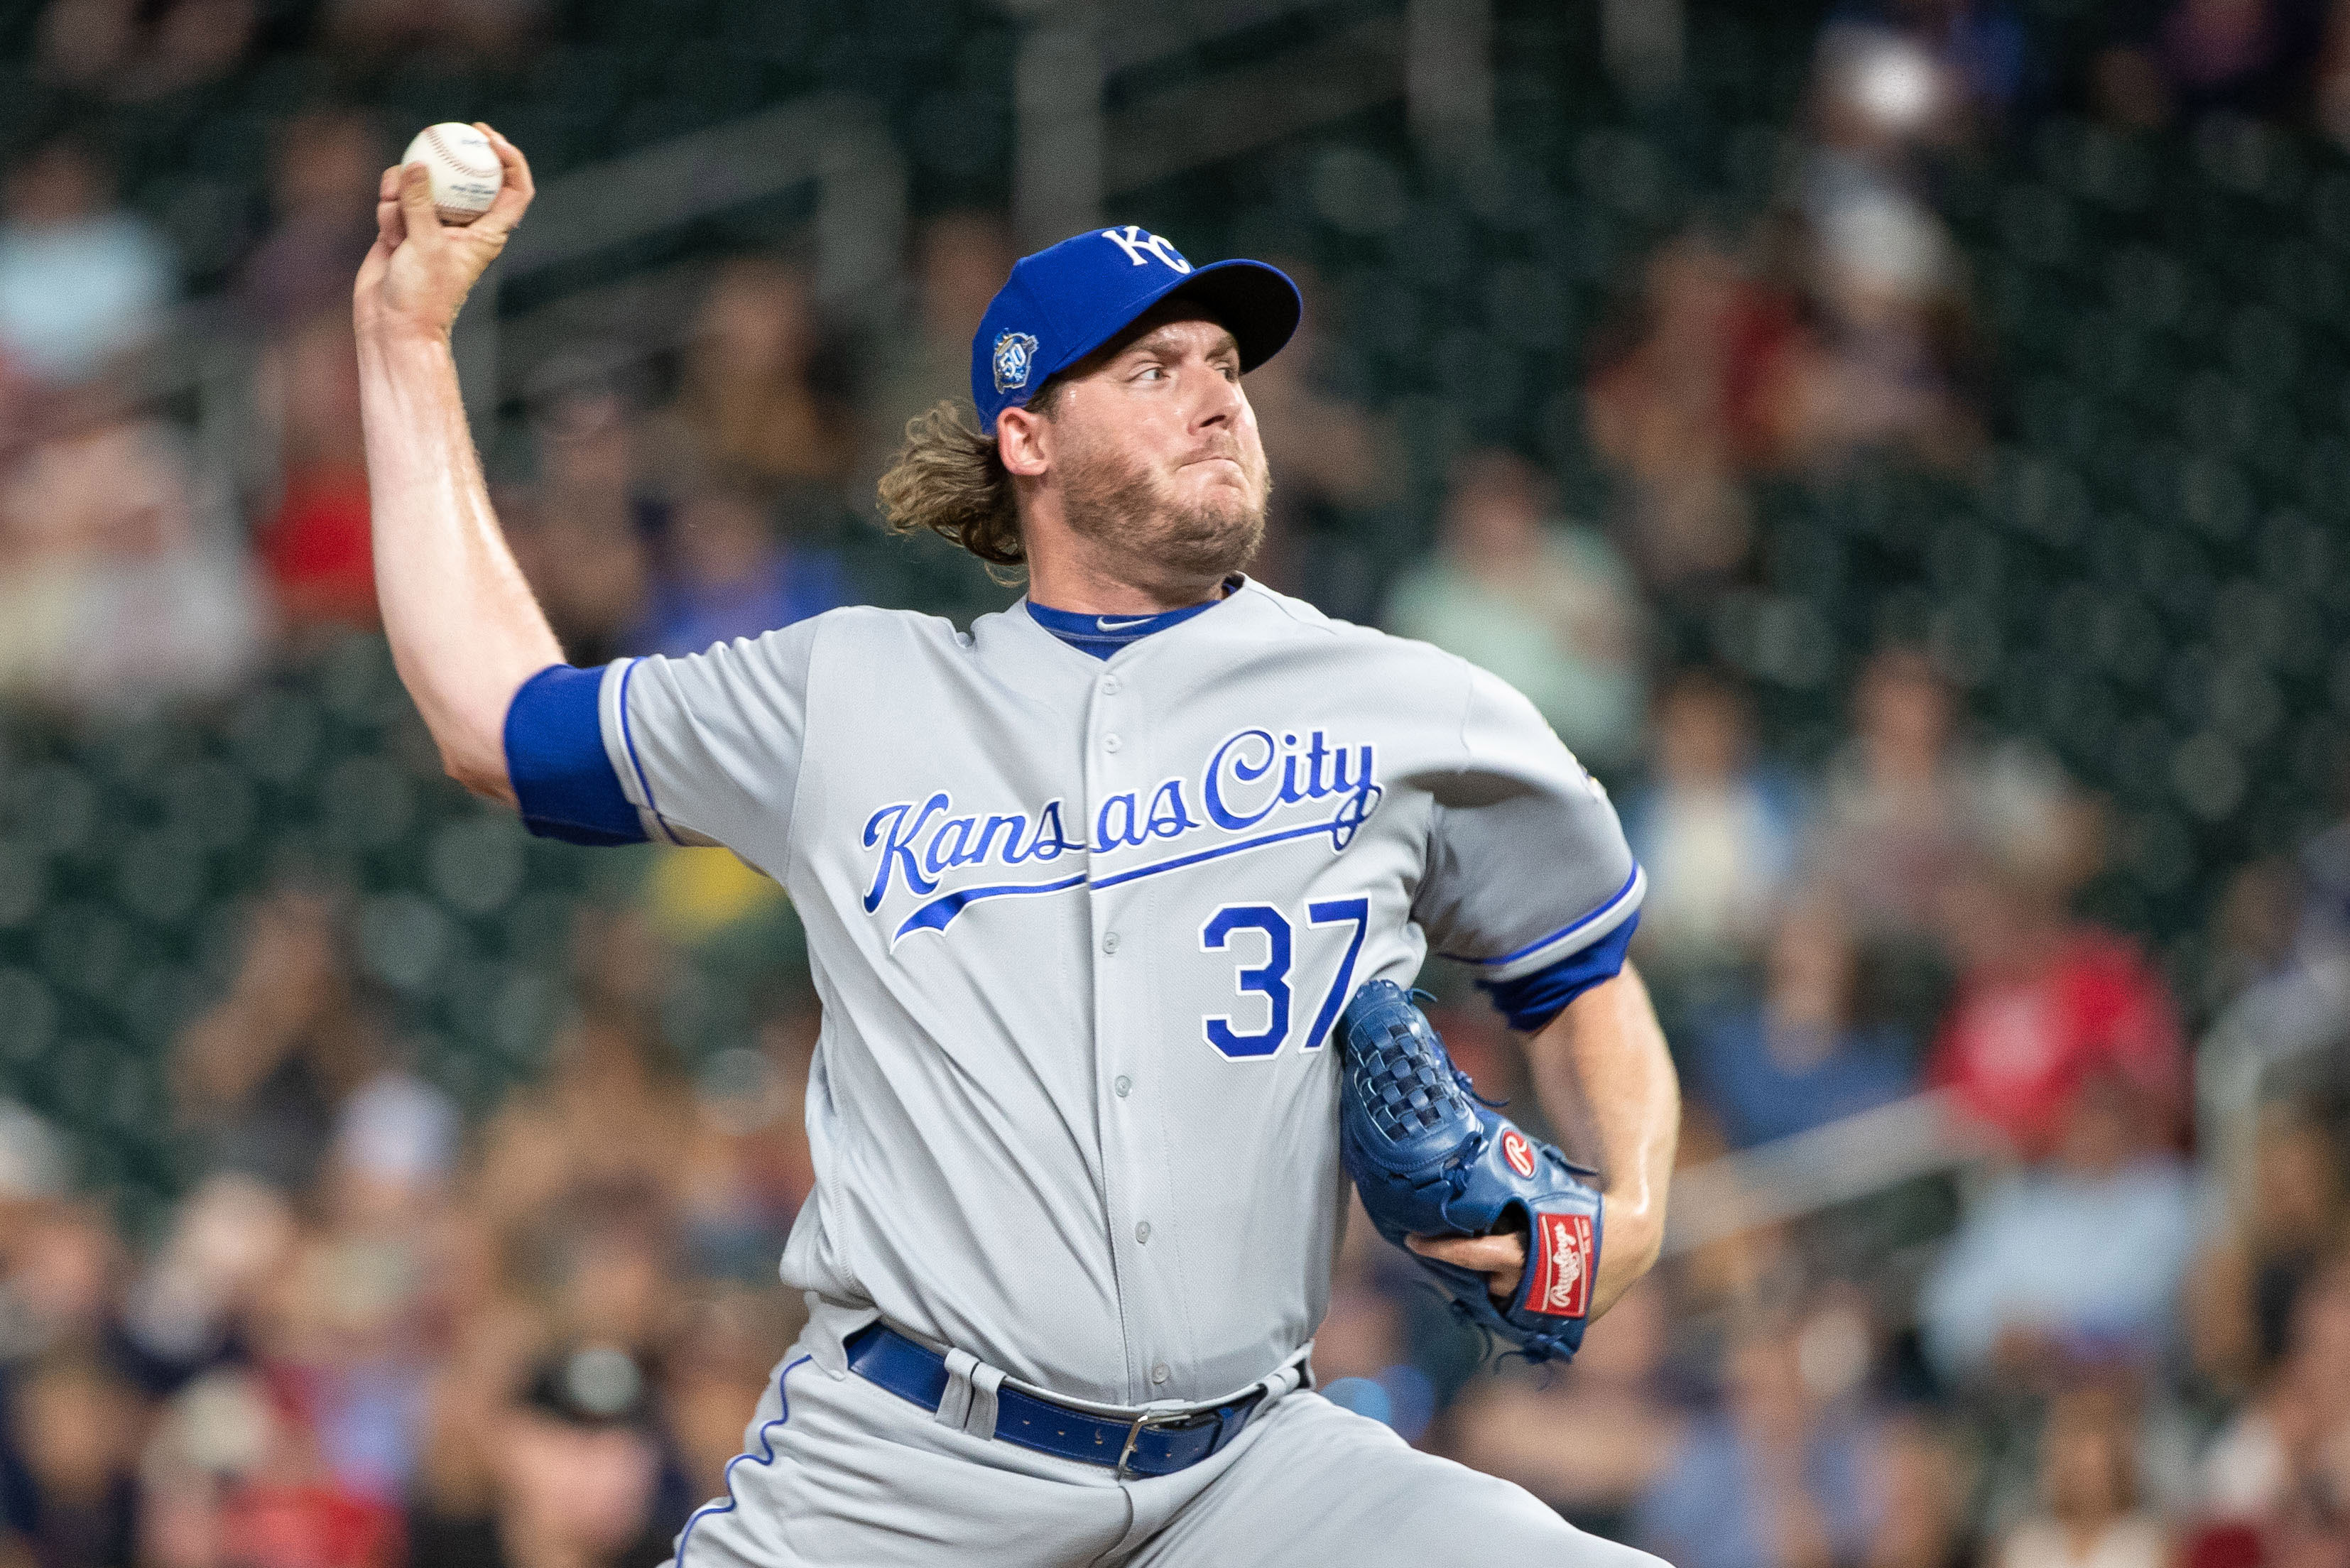 Jul 9, 2018; Minneapolis, MN, USA; Kansas City Royals relief pitcher Brandon Maurer (37) delivers a pitch during the eighth inning against the Minnesota Twins at Target Field. Mandatory Credit: Jordan Johnson-USA TODAY Sports